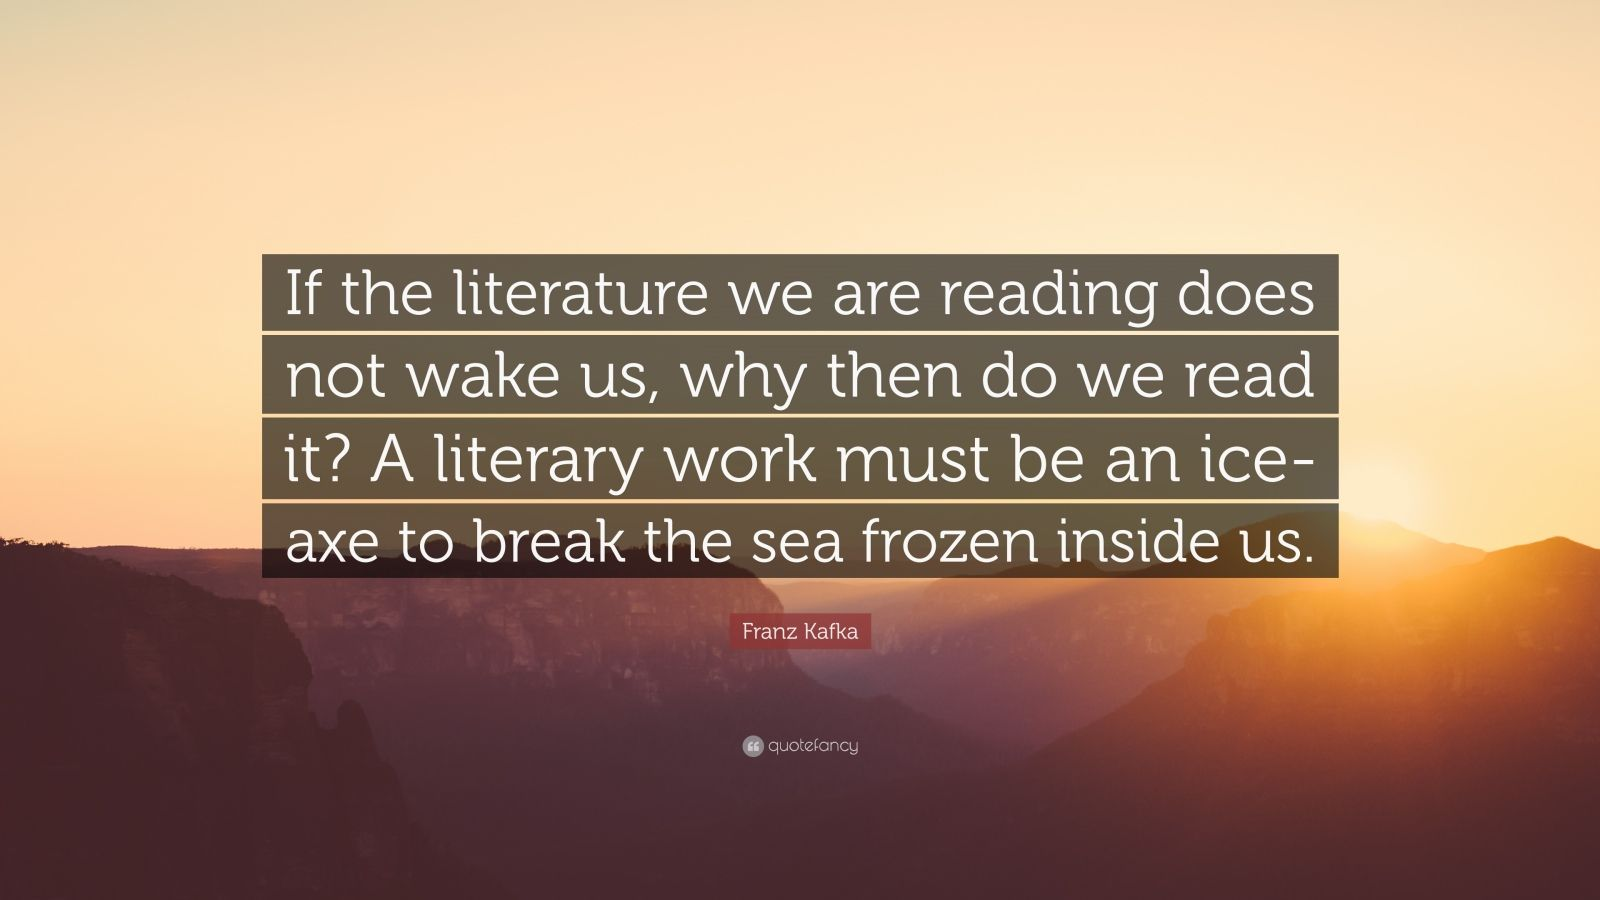 """Quotes About Sea: """"If the literature we are reading does not wake us, why then do we read it? A literary work must be an ice-axe to break the sea frozen inside us."""" — Franz Kafka"""